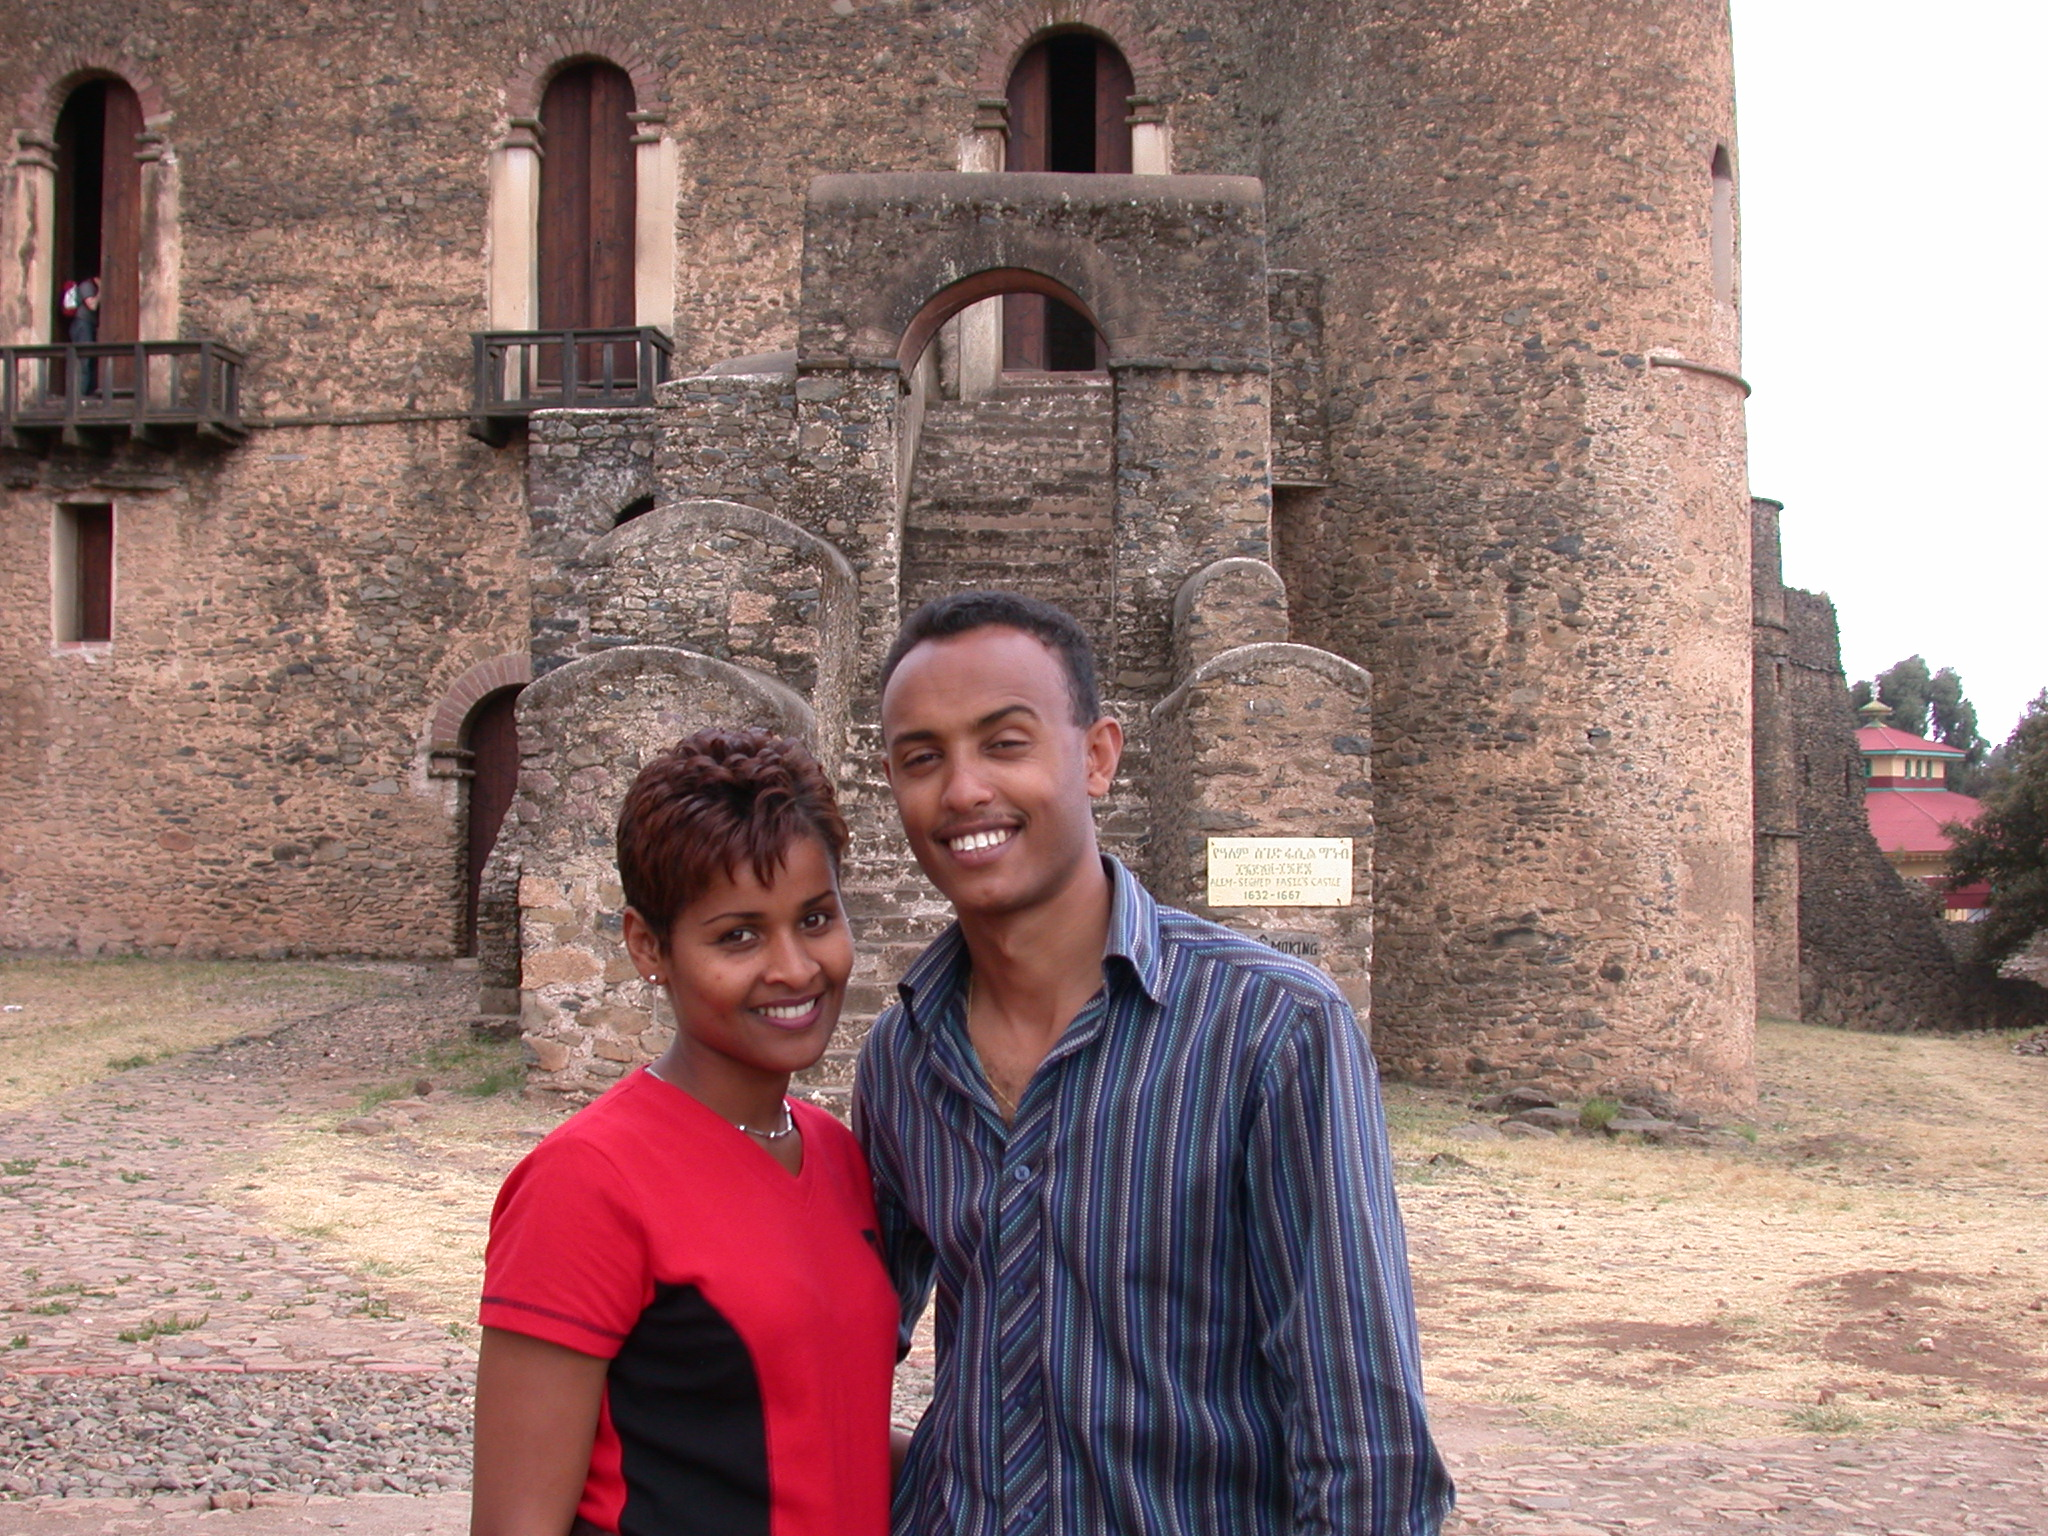 Ethiopian Couple in Front of Palace, Fasil Ghebbi Royal Enclosure, Gonder, Ethiopia